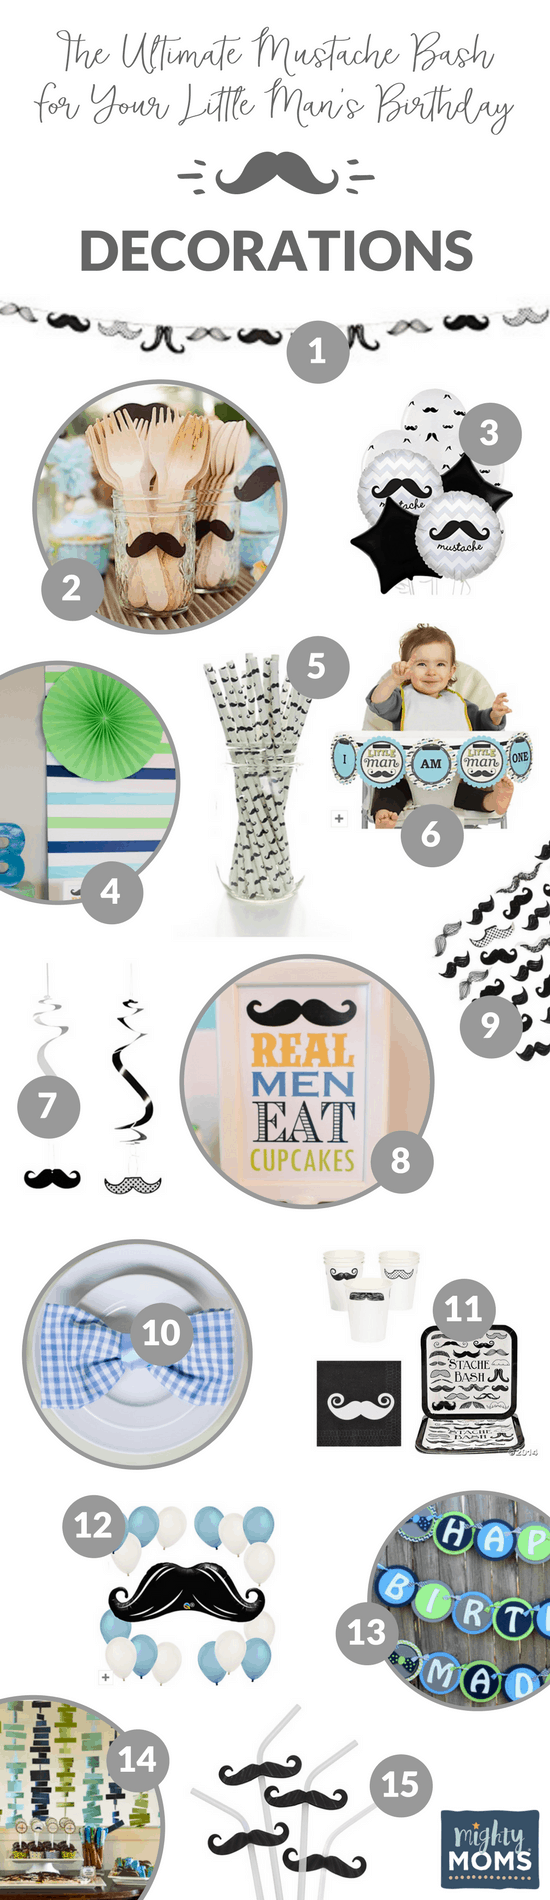 16 Mustache Bash Decor Ideas - MightyMoms.club